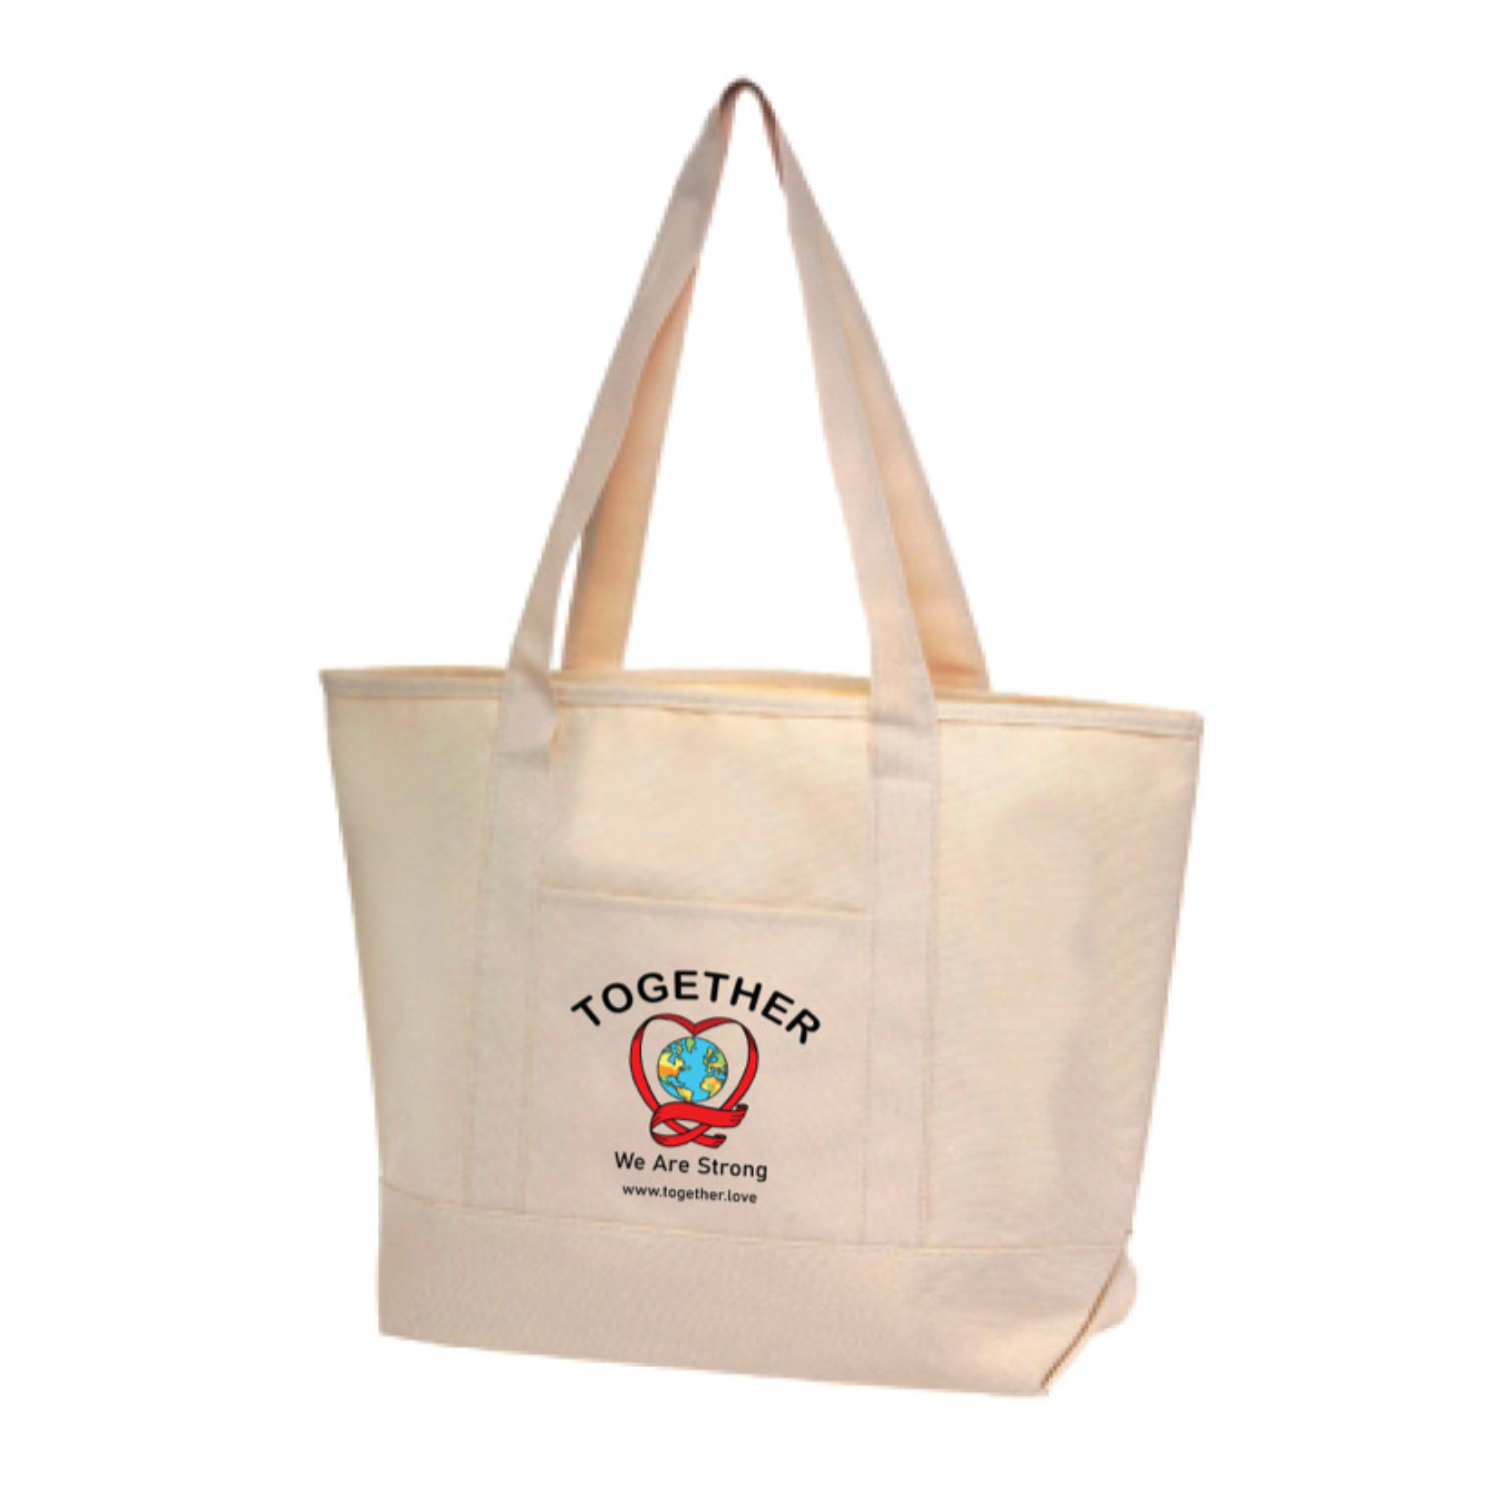 Antimicrobial Tote/Market Bag